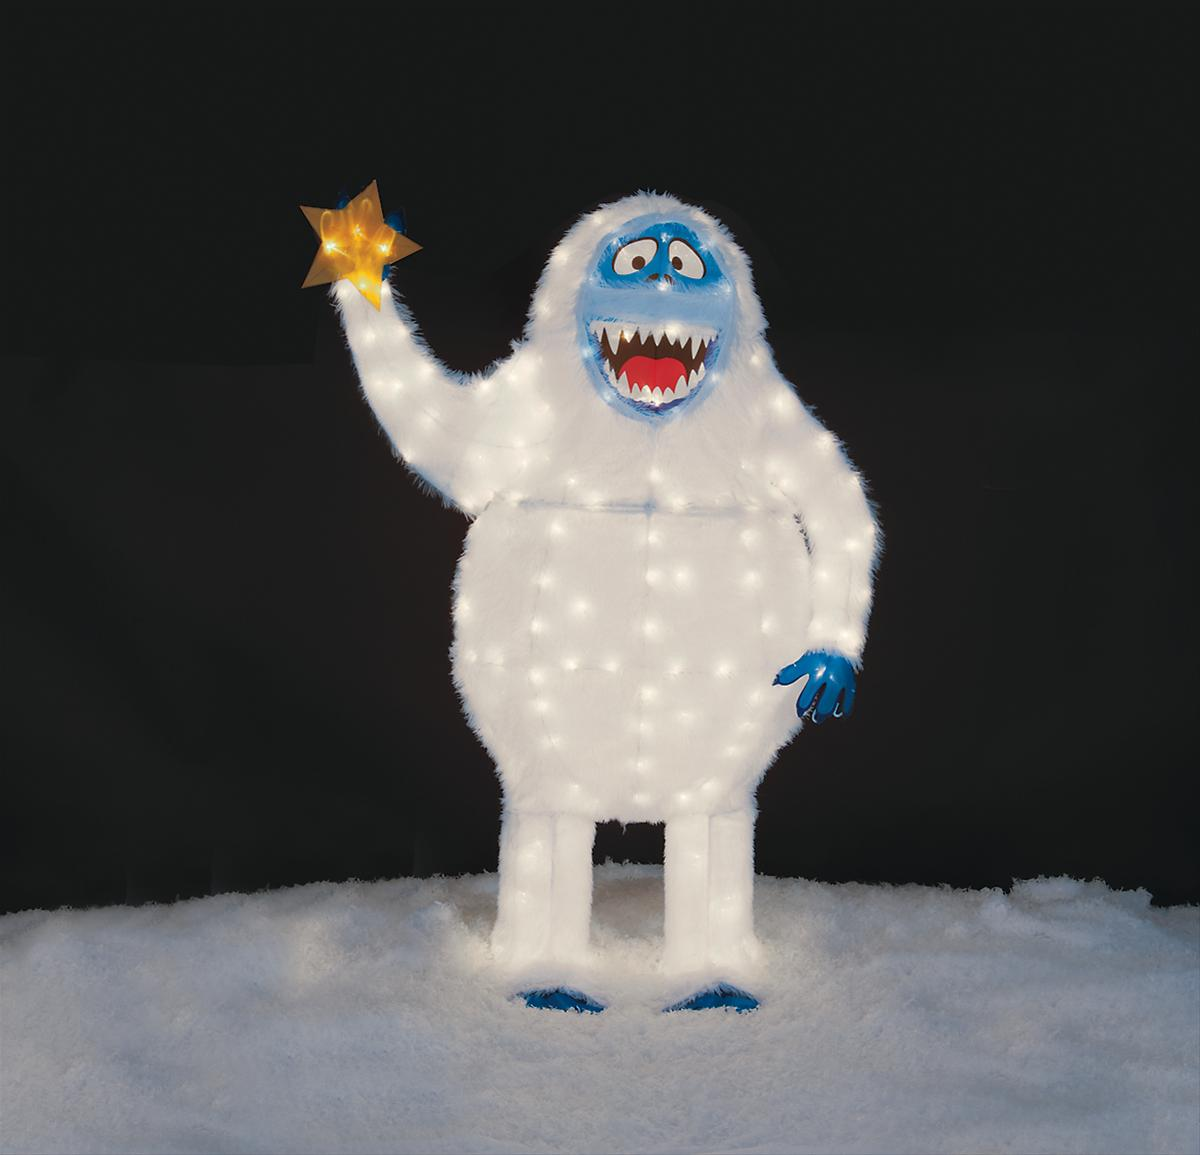 56 bumble tinsel light lawn decoration 50545 free for Abominable snowman holiday decoration